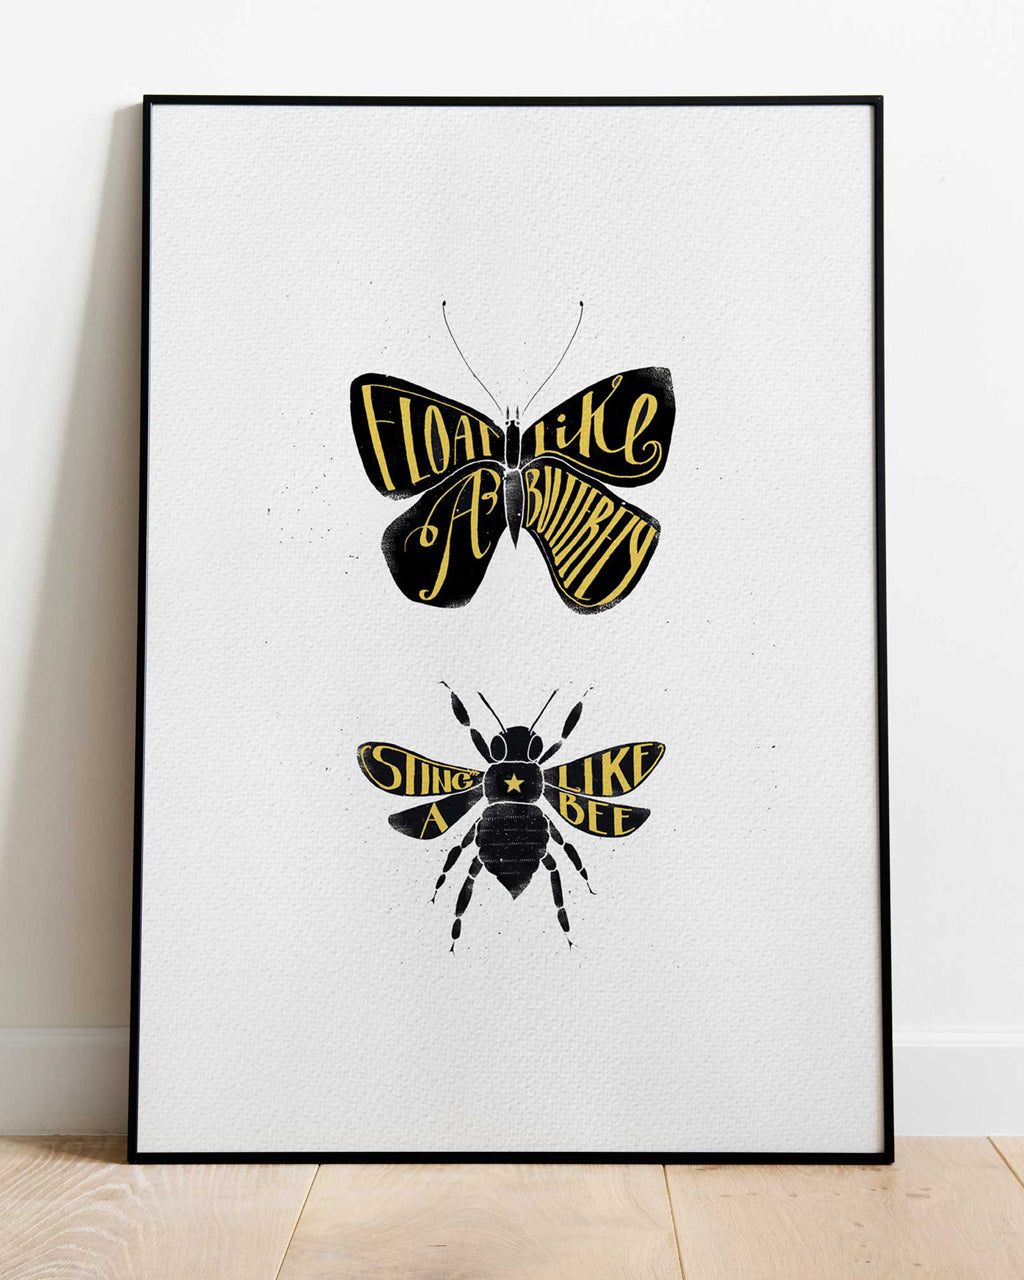 Float like a butterfly - print of original illustration on watercolour paper